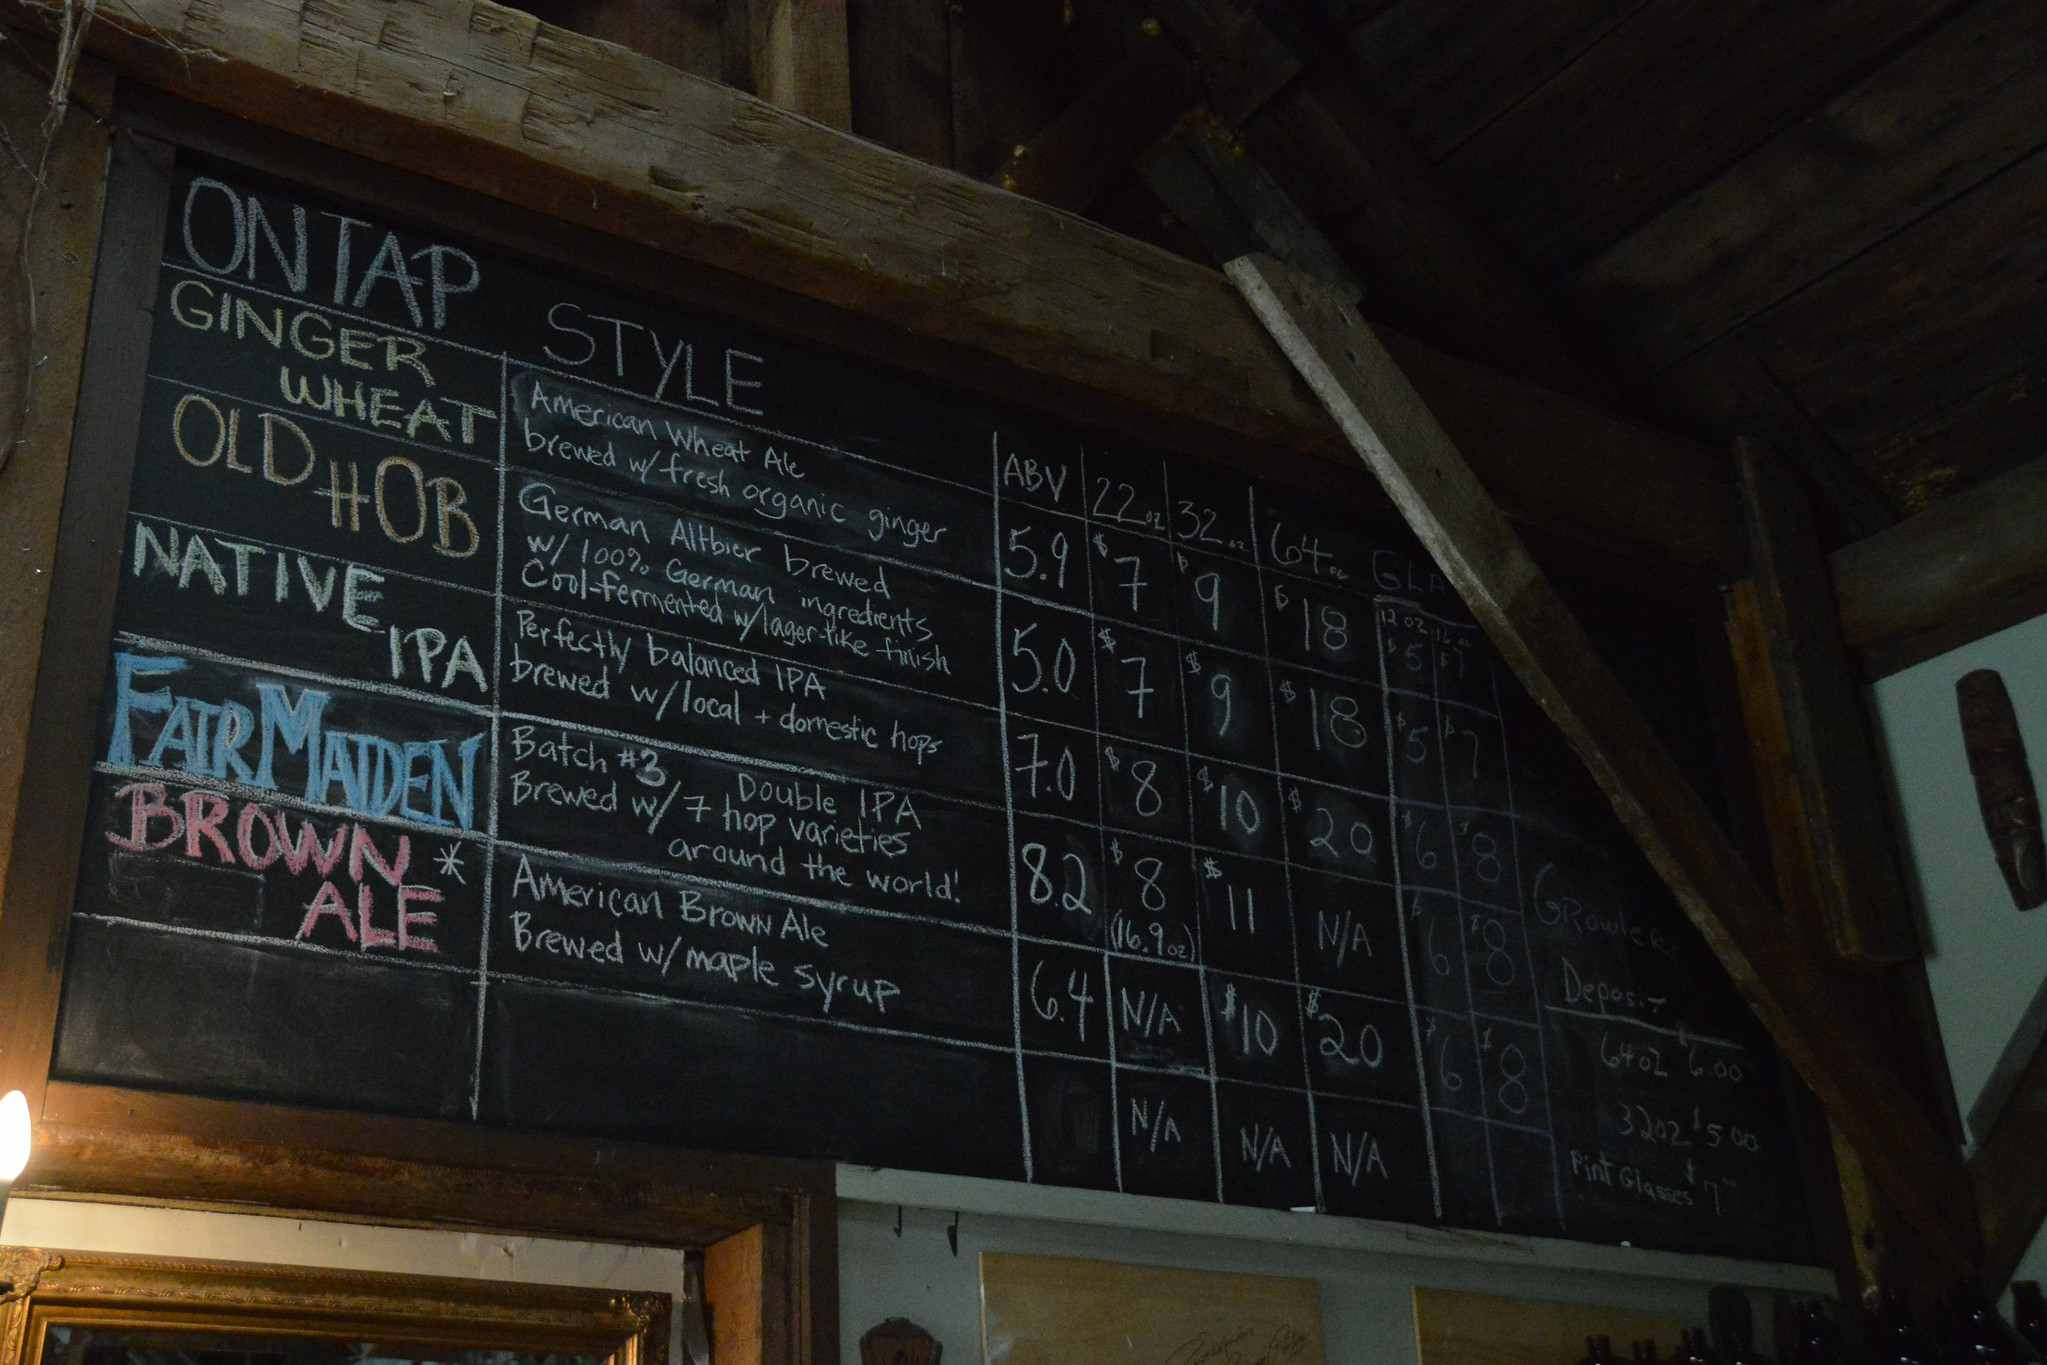 Foley Brothers Brewing Chalkboard